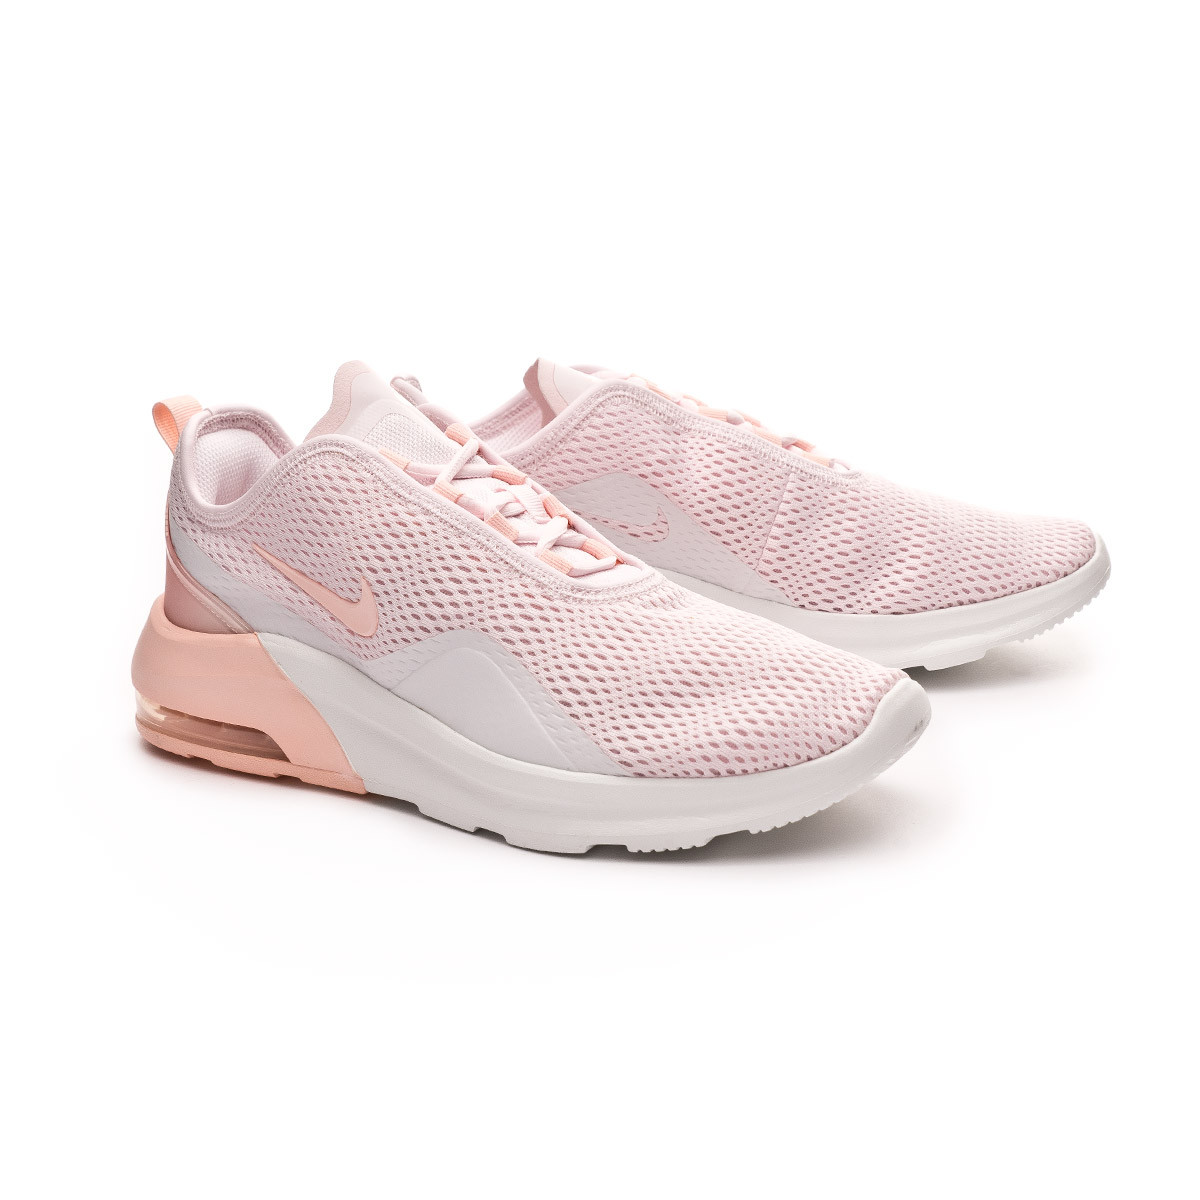 e4c100222f Trainers Nike Air Max Motion 2 Pale pink-Washed coral-Pale ivory - Tienda  de fútbol Fútbol Emotion